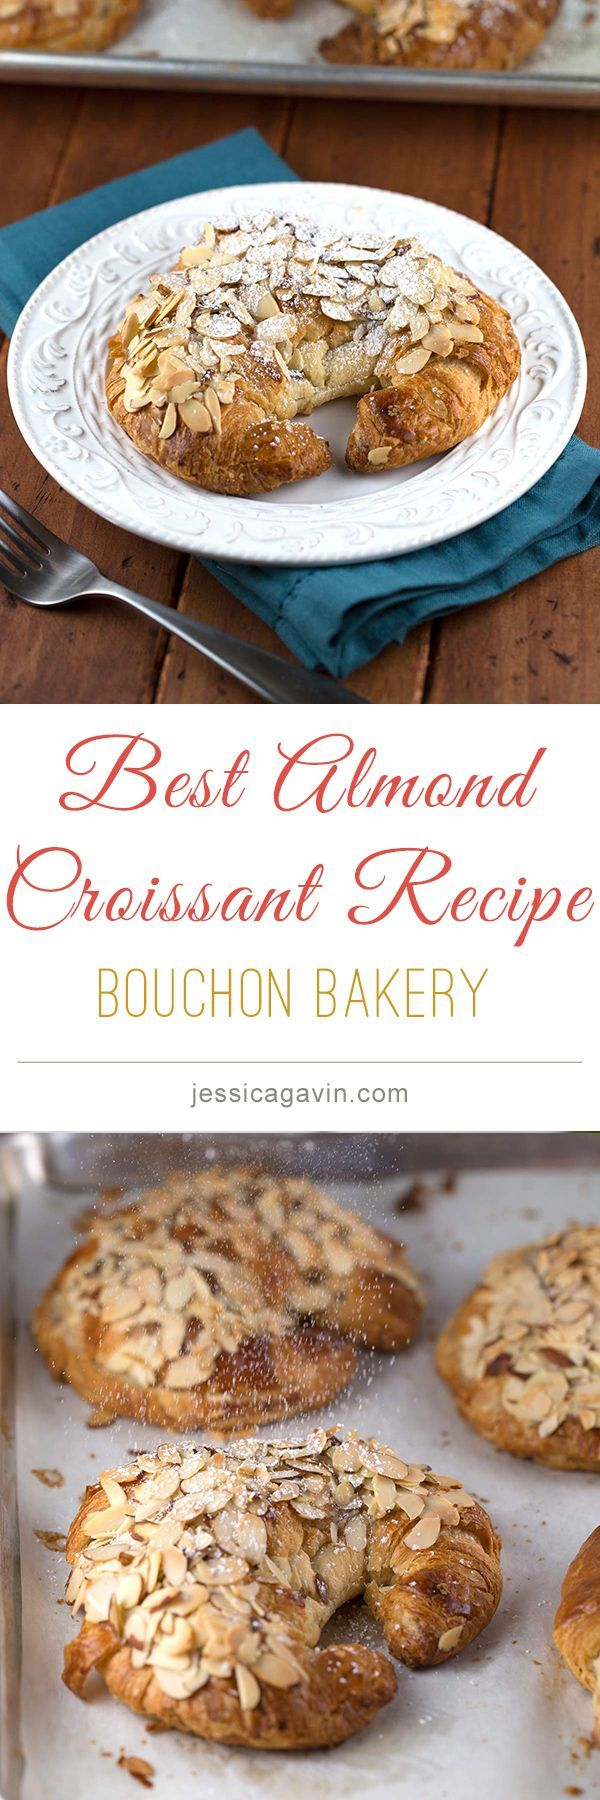 AMAZING! Delicious Almond Croissants inspired by Bouchon Bakery